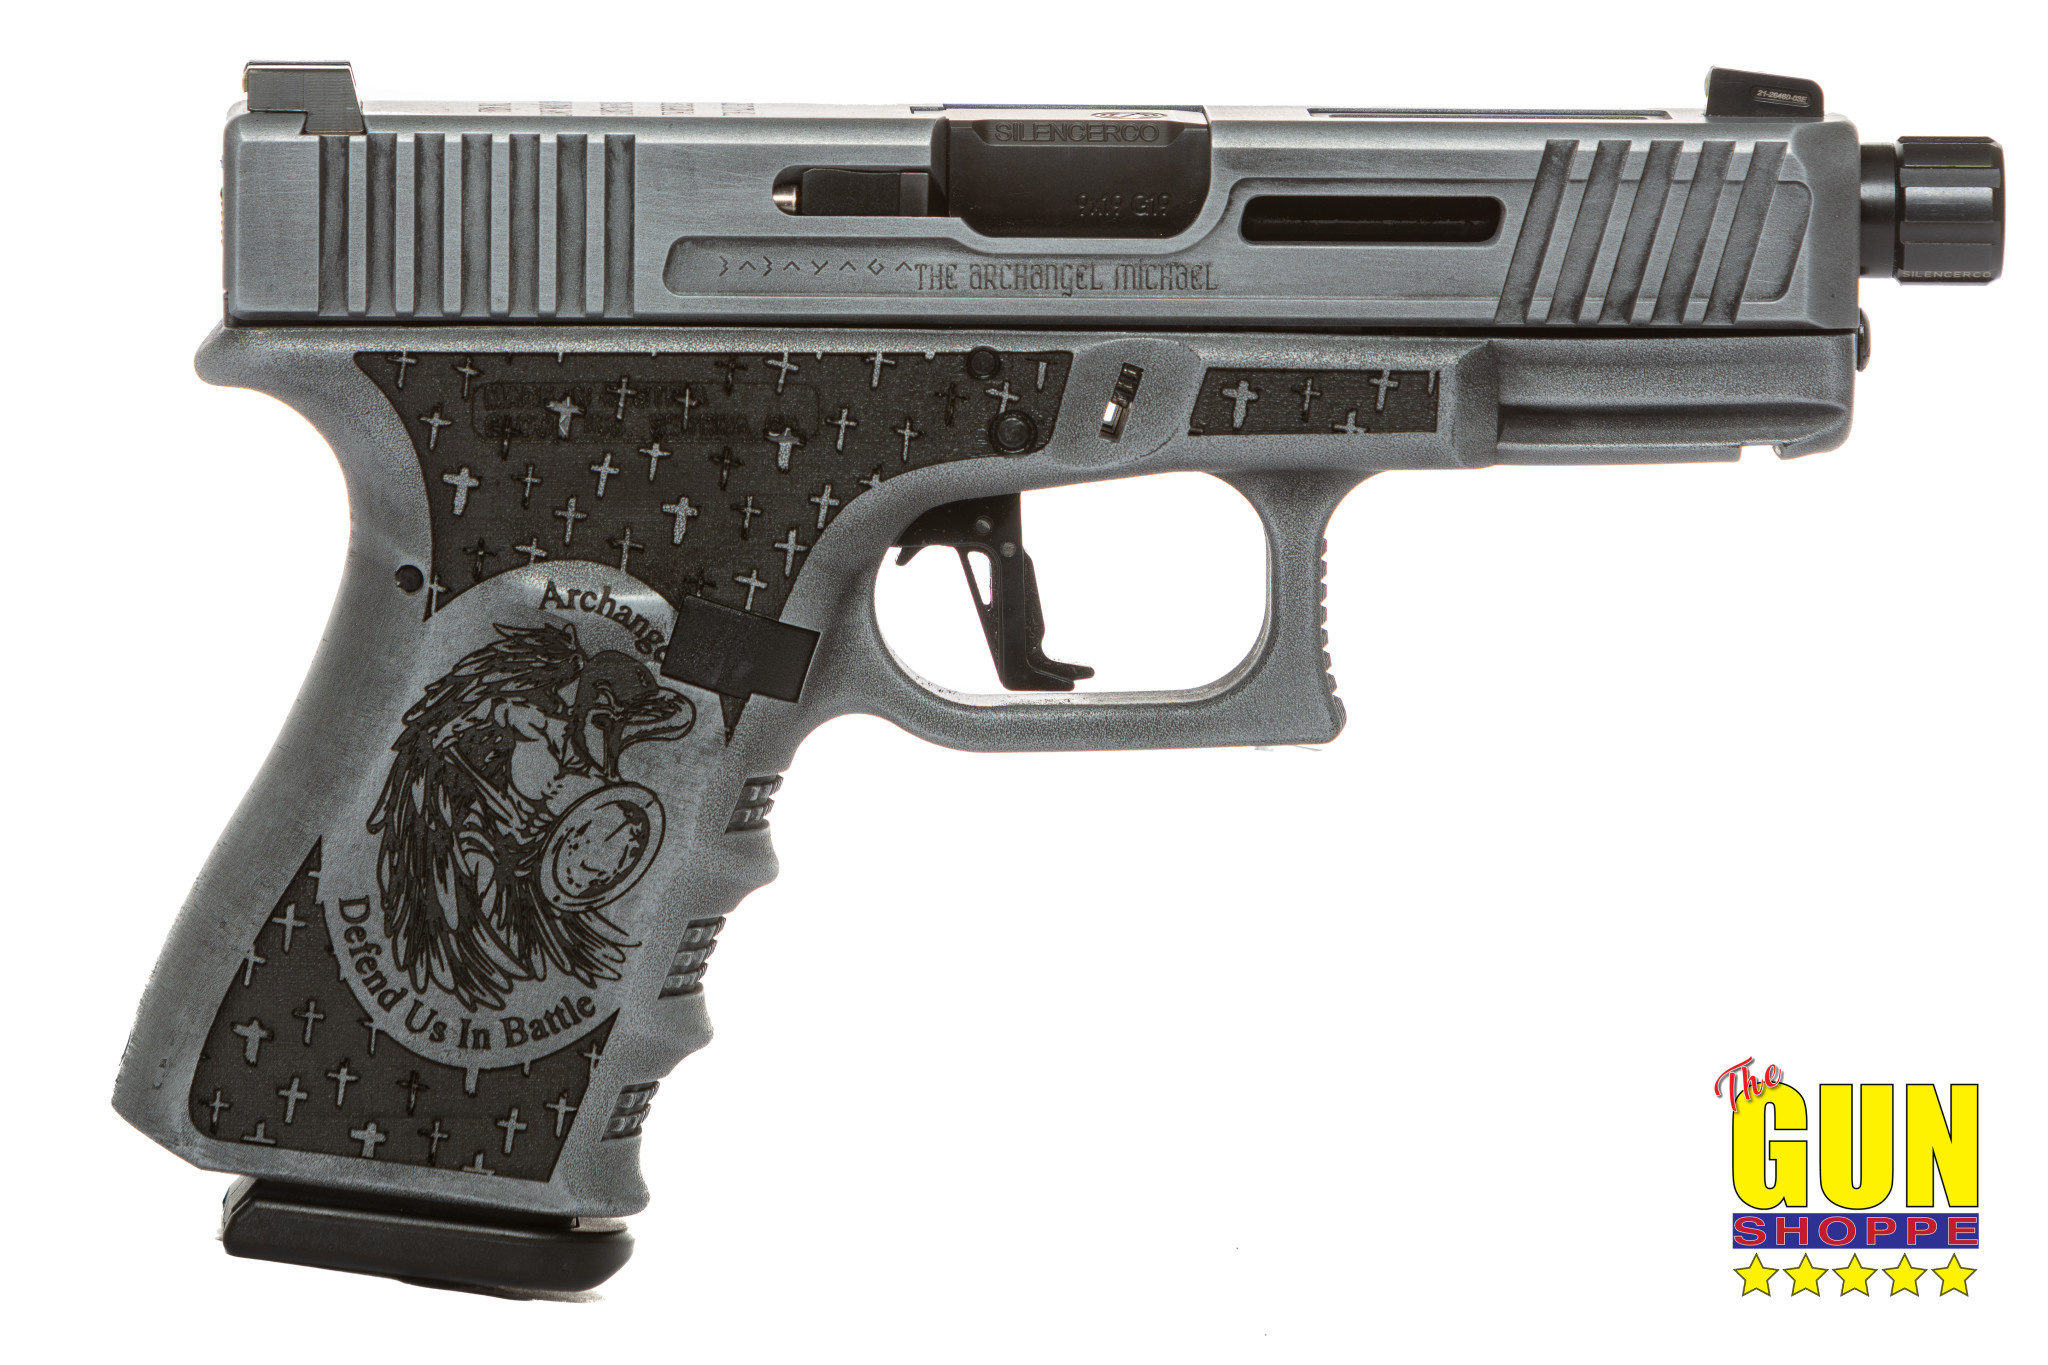 Glock Archangel Glock 19 Gen3 9mm